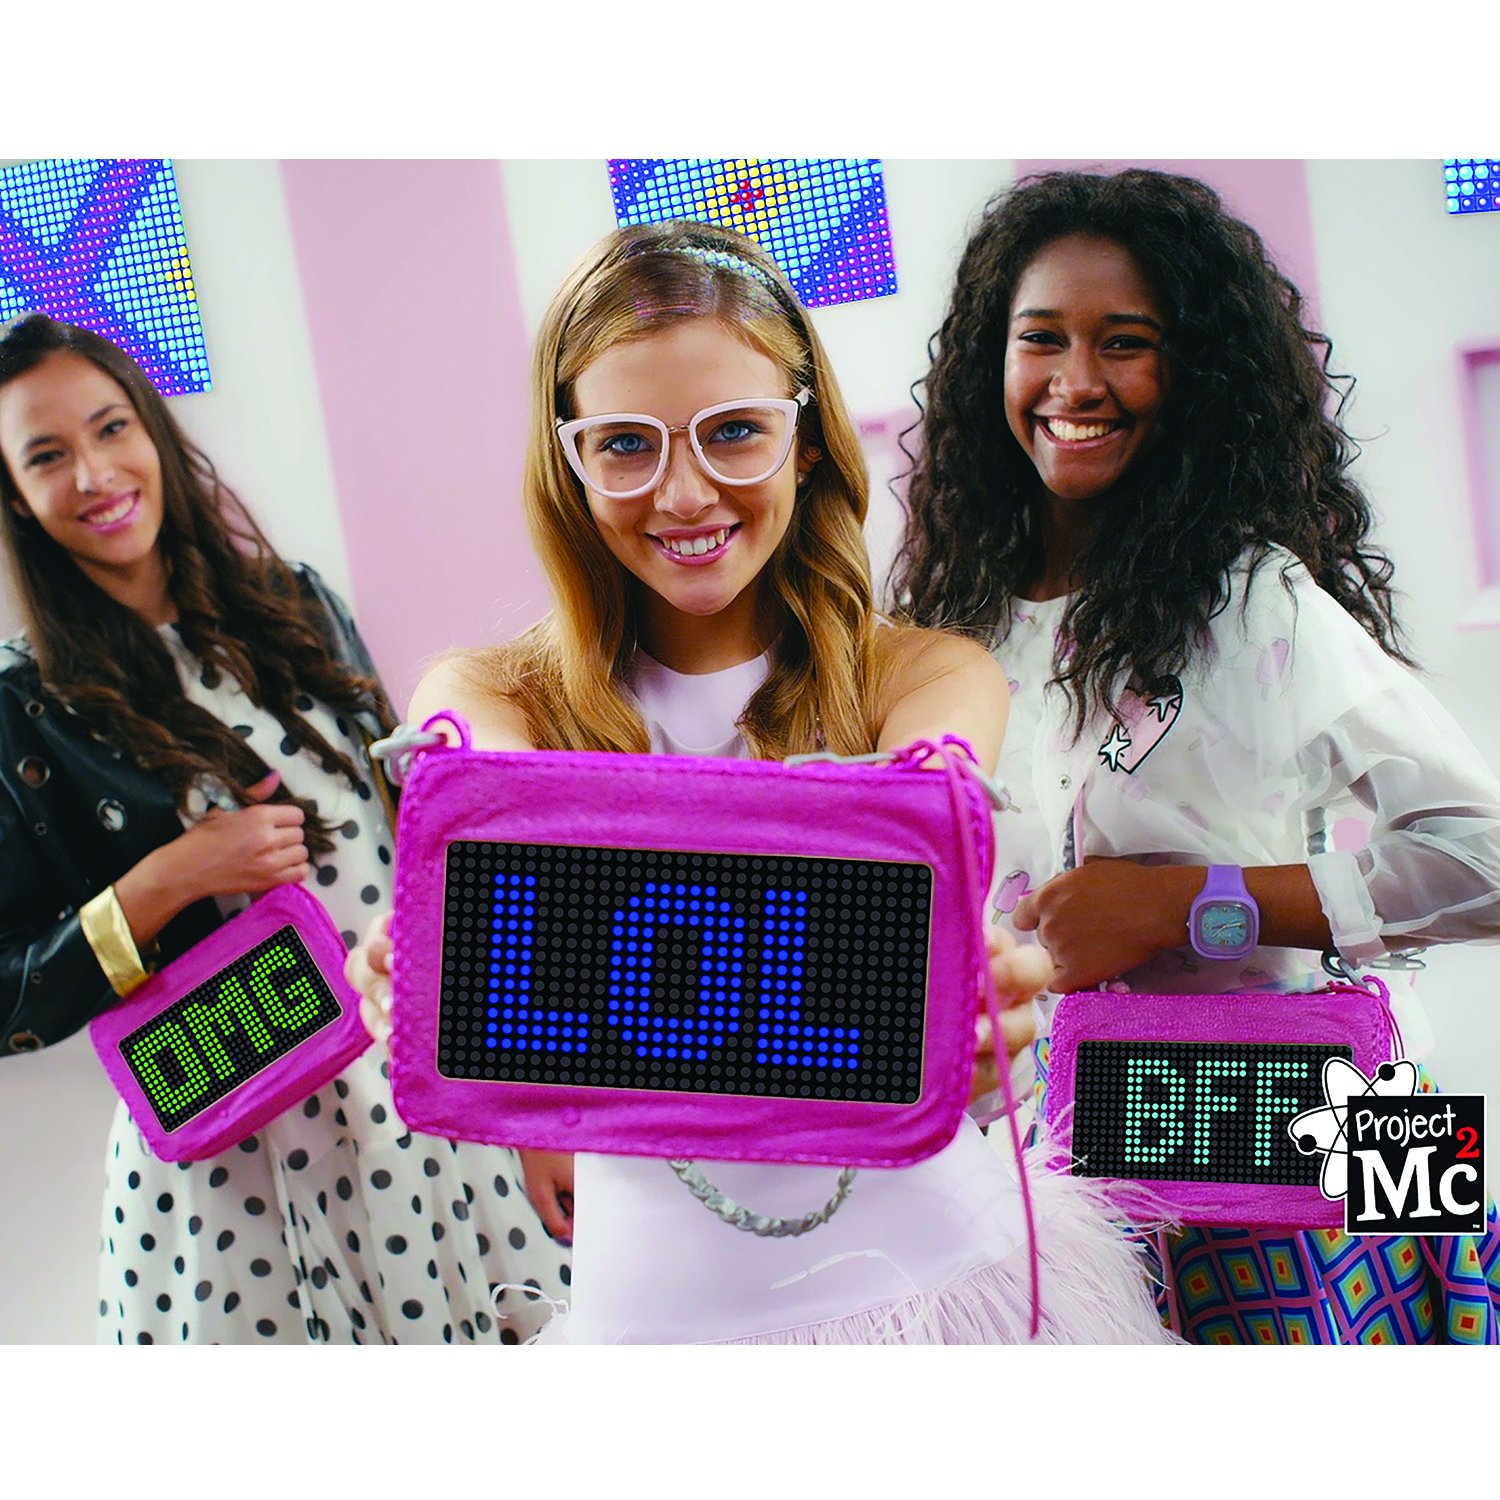 Girls Handbag Gift Project Mc2 Smart Pixel Purse Toy Led Light iOS and android